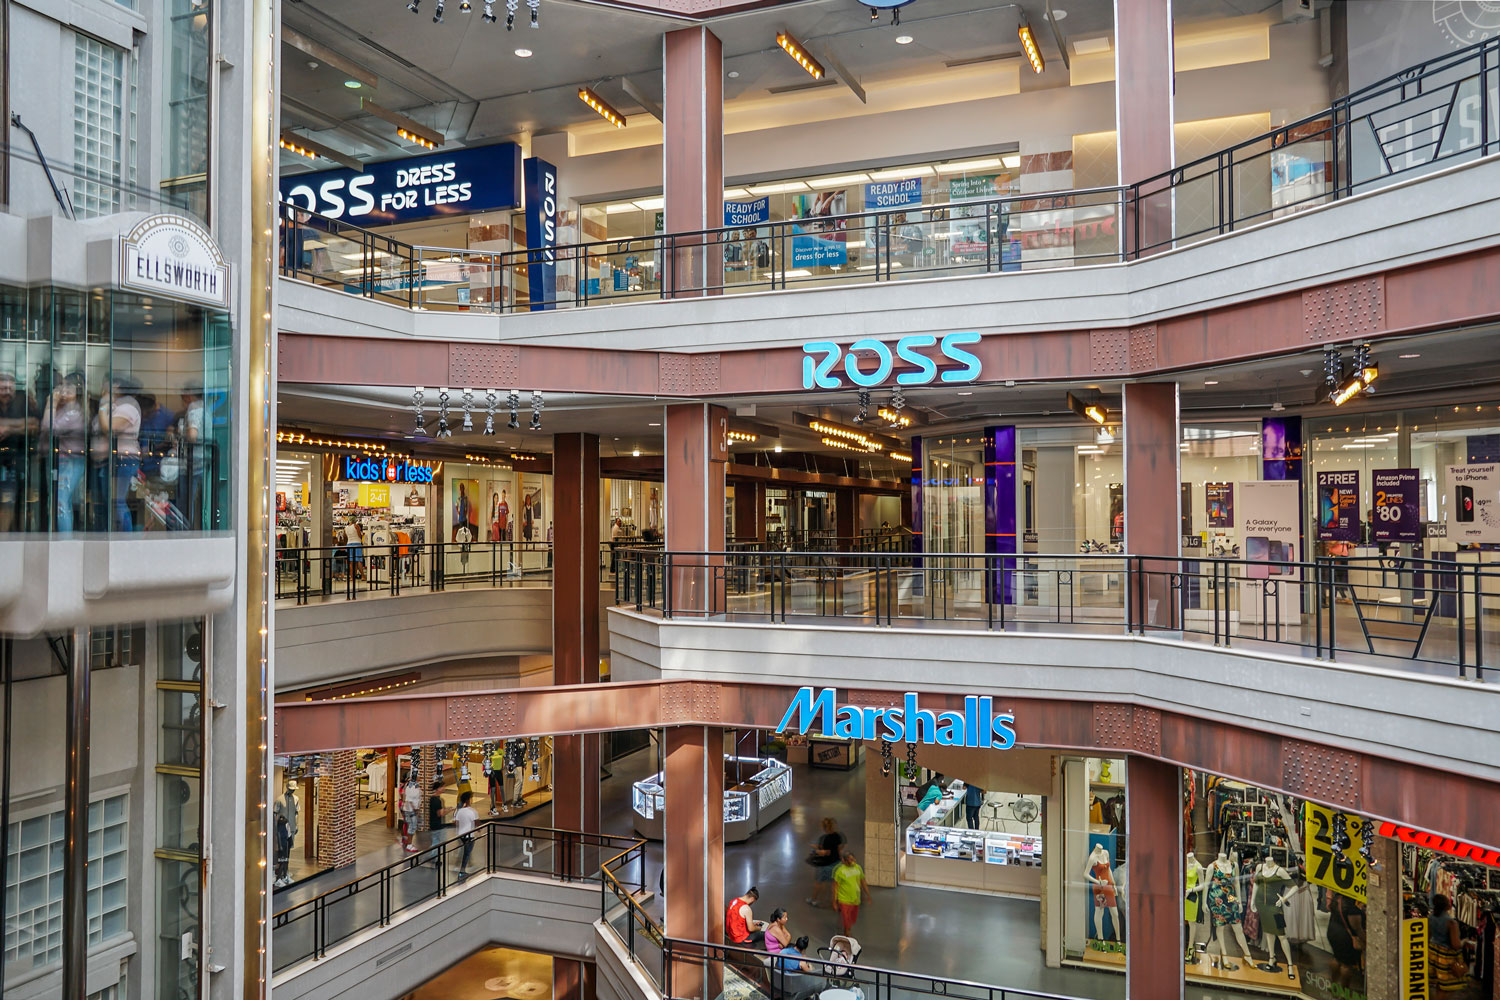 8 minutes to shopping at Ellsworth Place in Downtown Silver Spring, MD